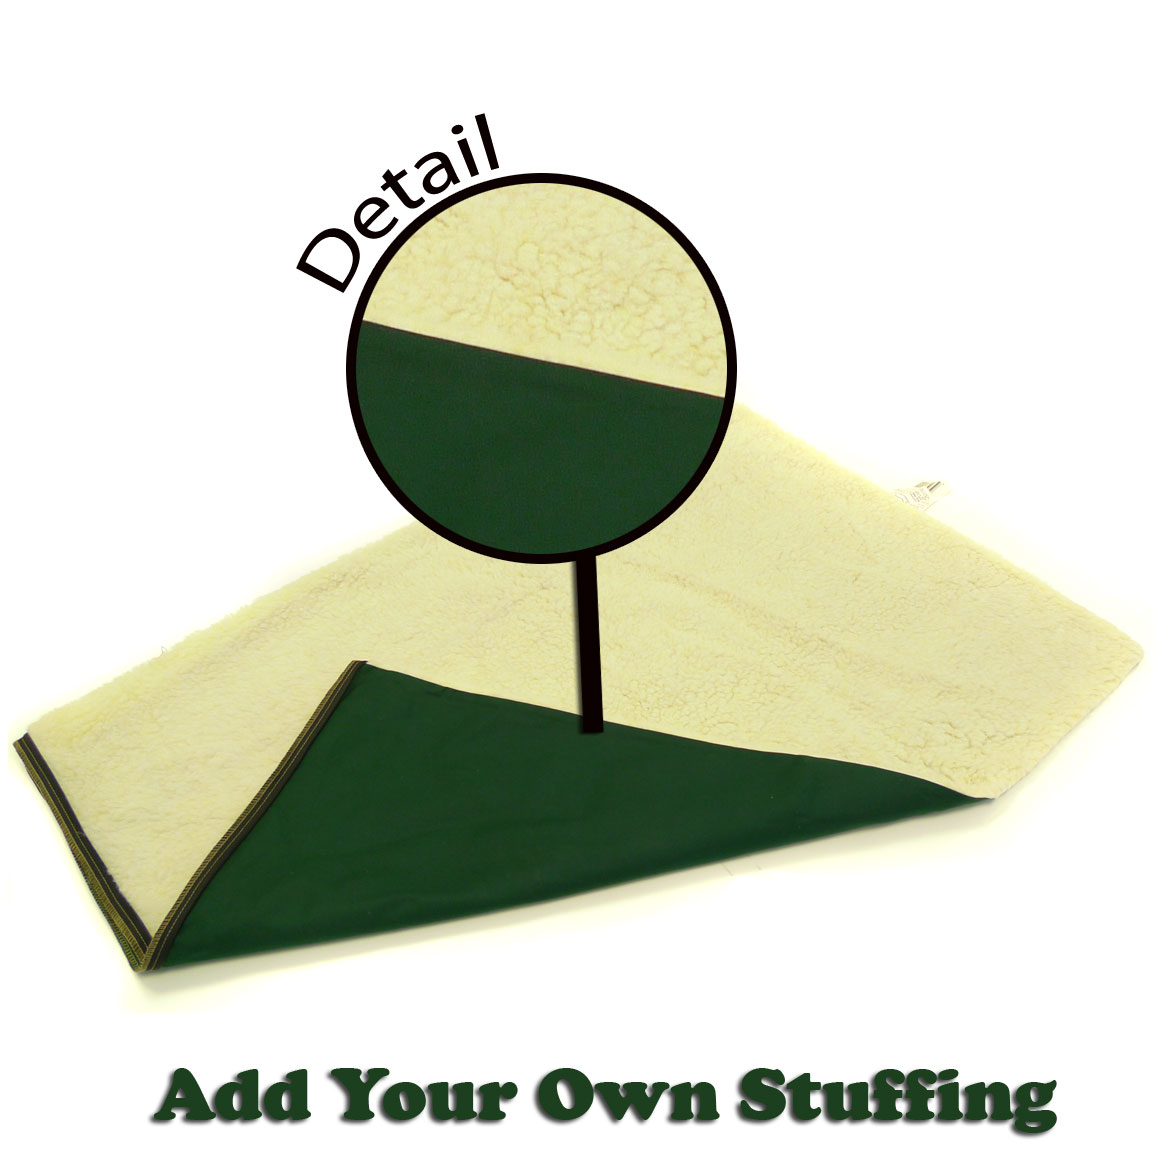 'Add Your Own Stuffing' Forest Green Sherpa Top Pet Bed